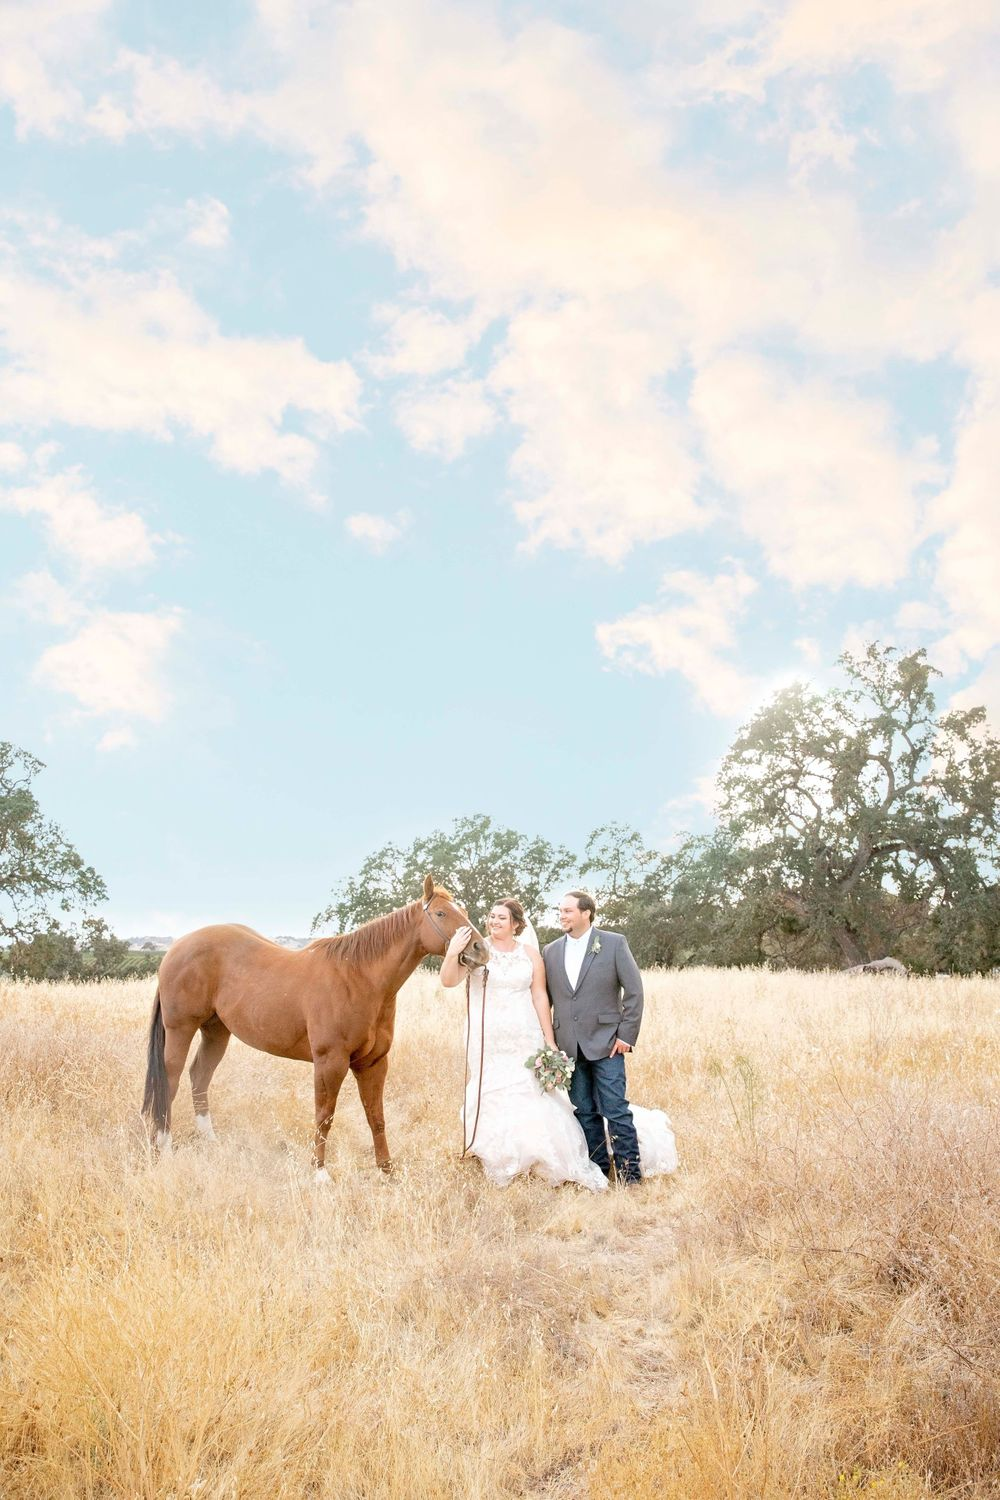 Bride and groom in a field with a horse